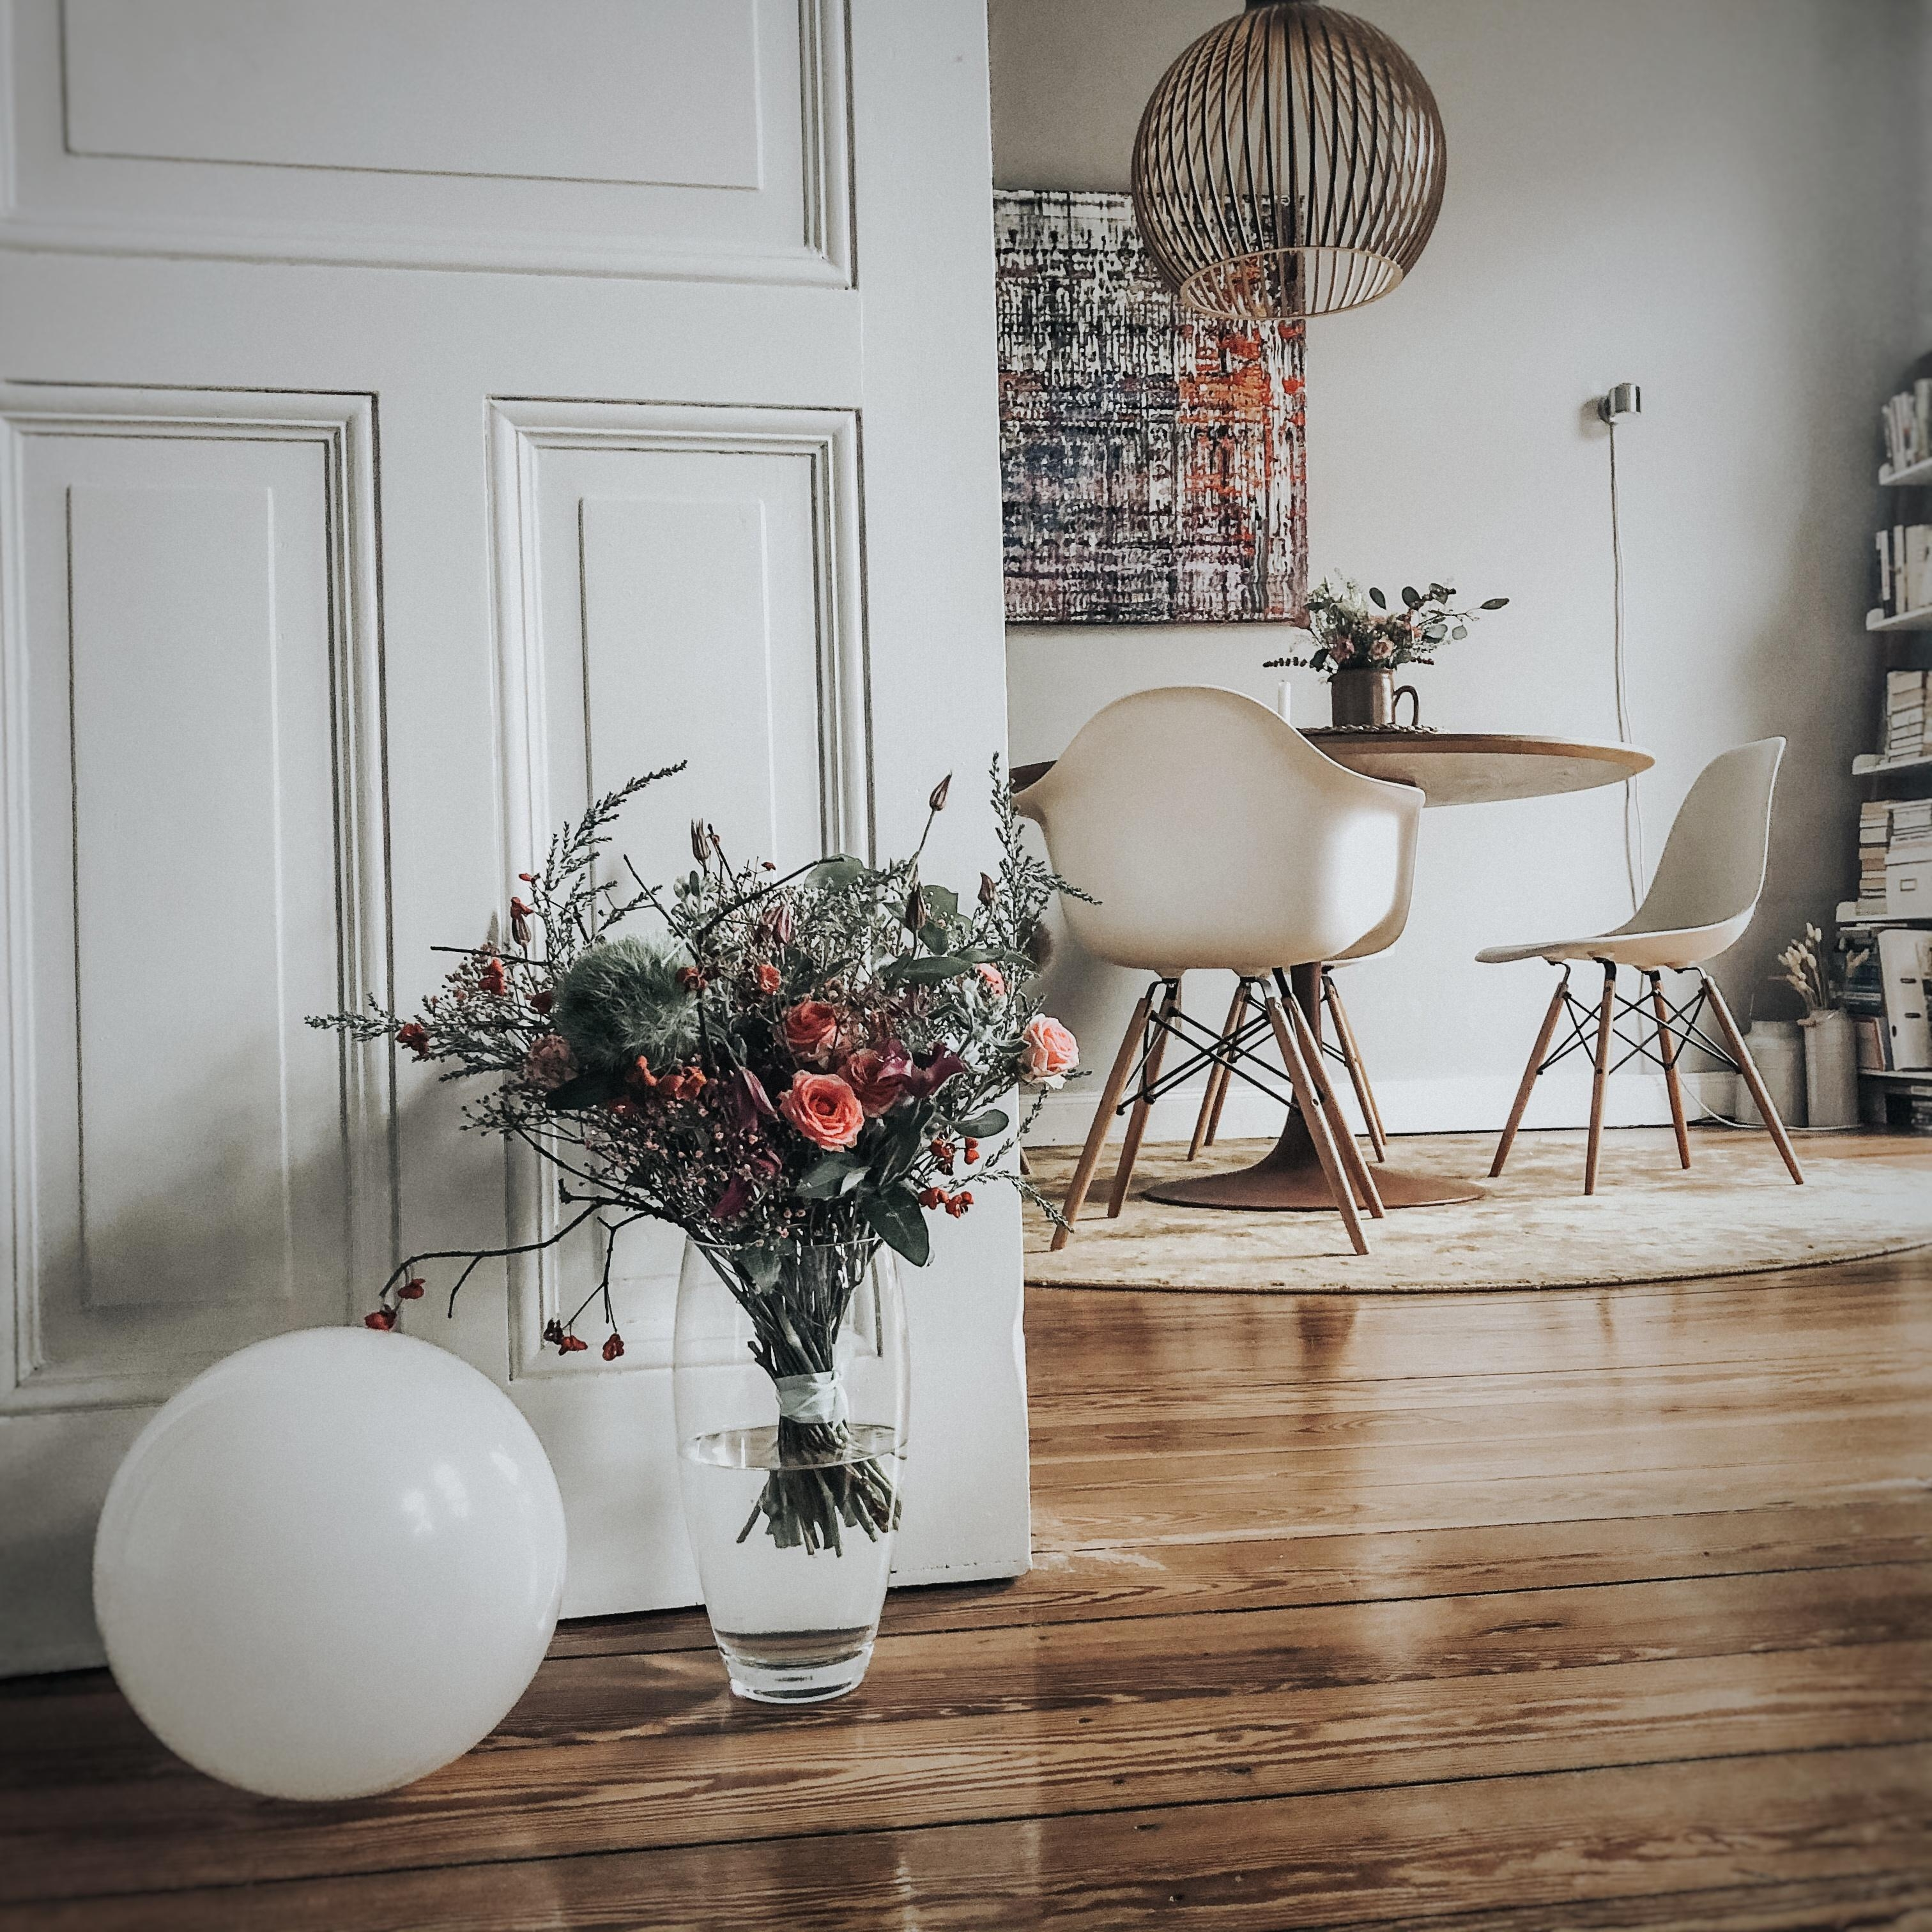 gloomy autumn days #altbau #vase #myhappyviews #living #nordicroom #interieur #interior #interiorstyling